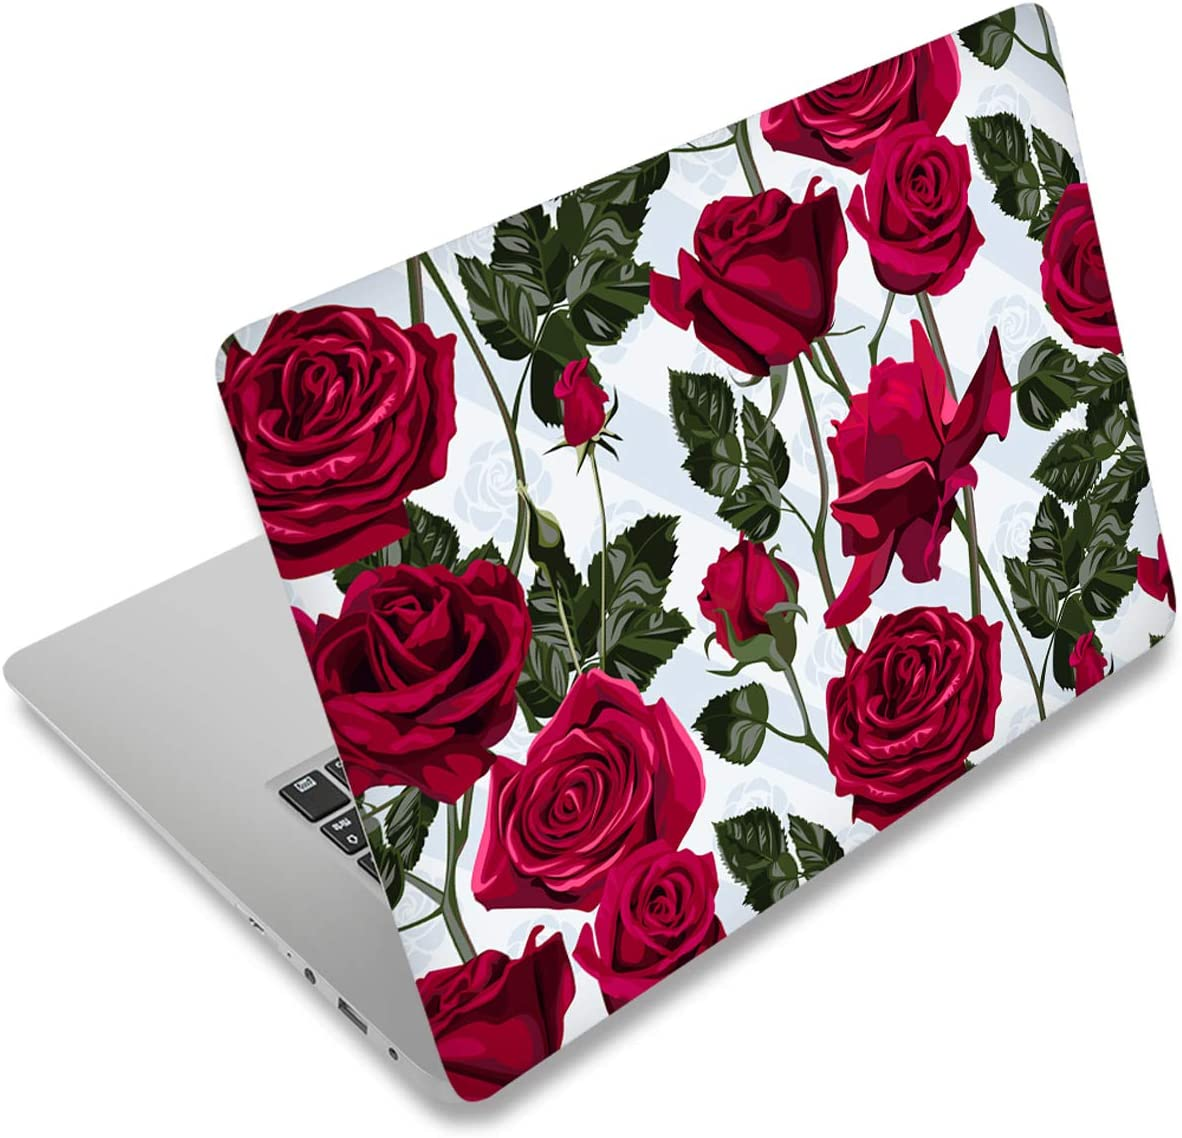 icolor Laptop Skin Sticker Decal 12